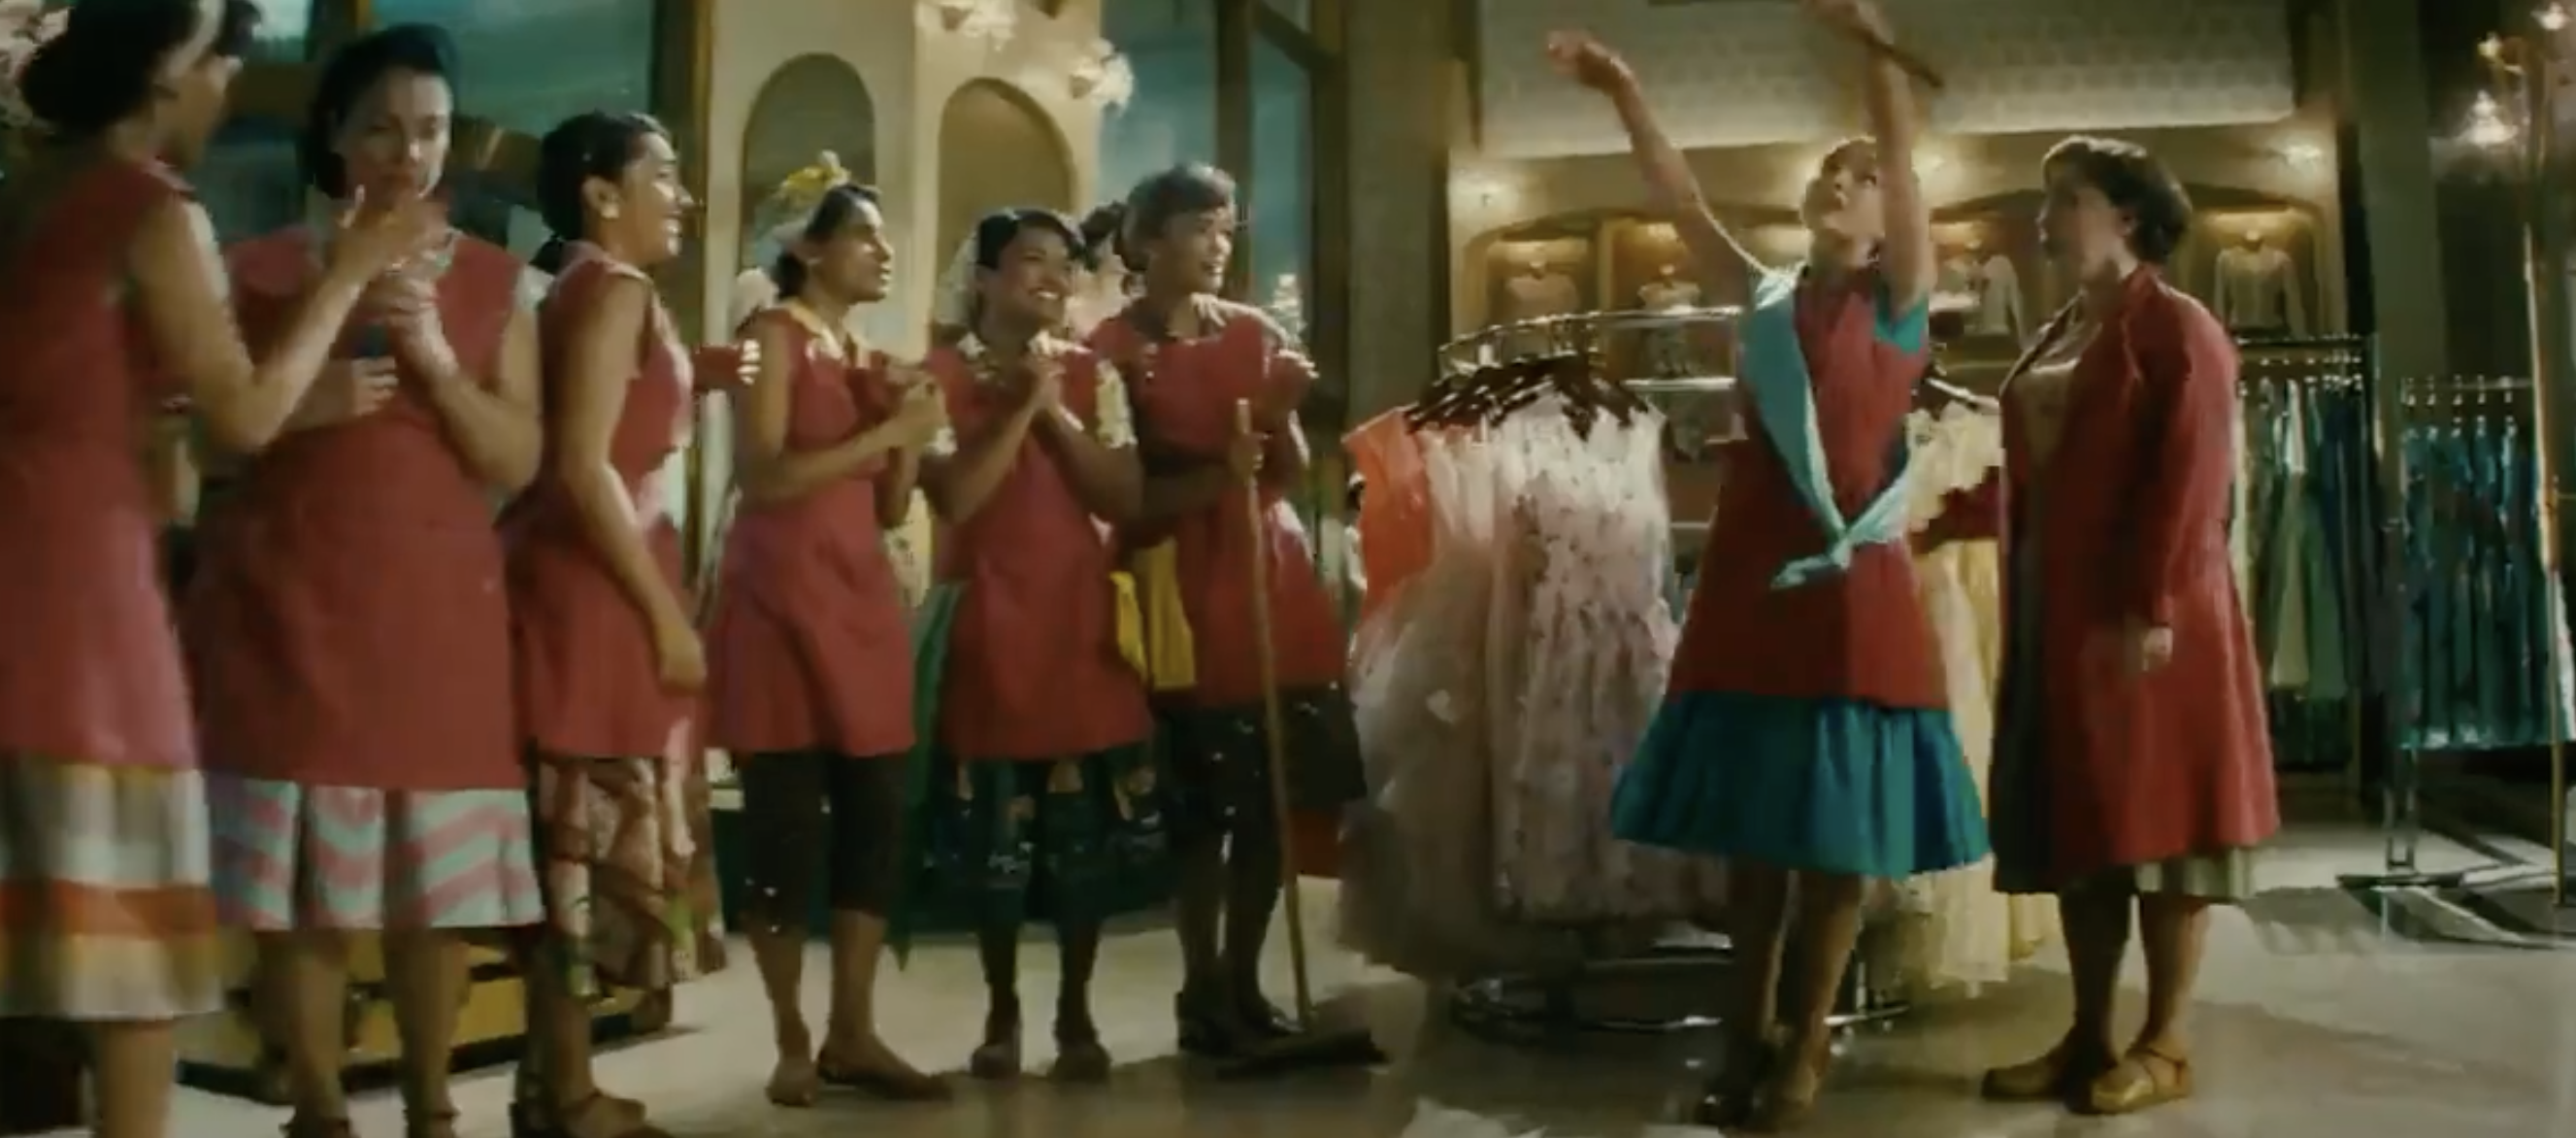 A group of women in what looks like a department store